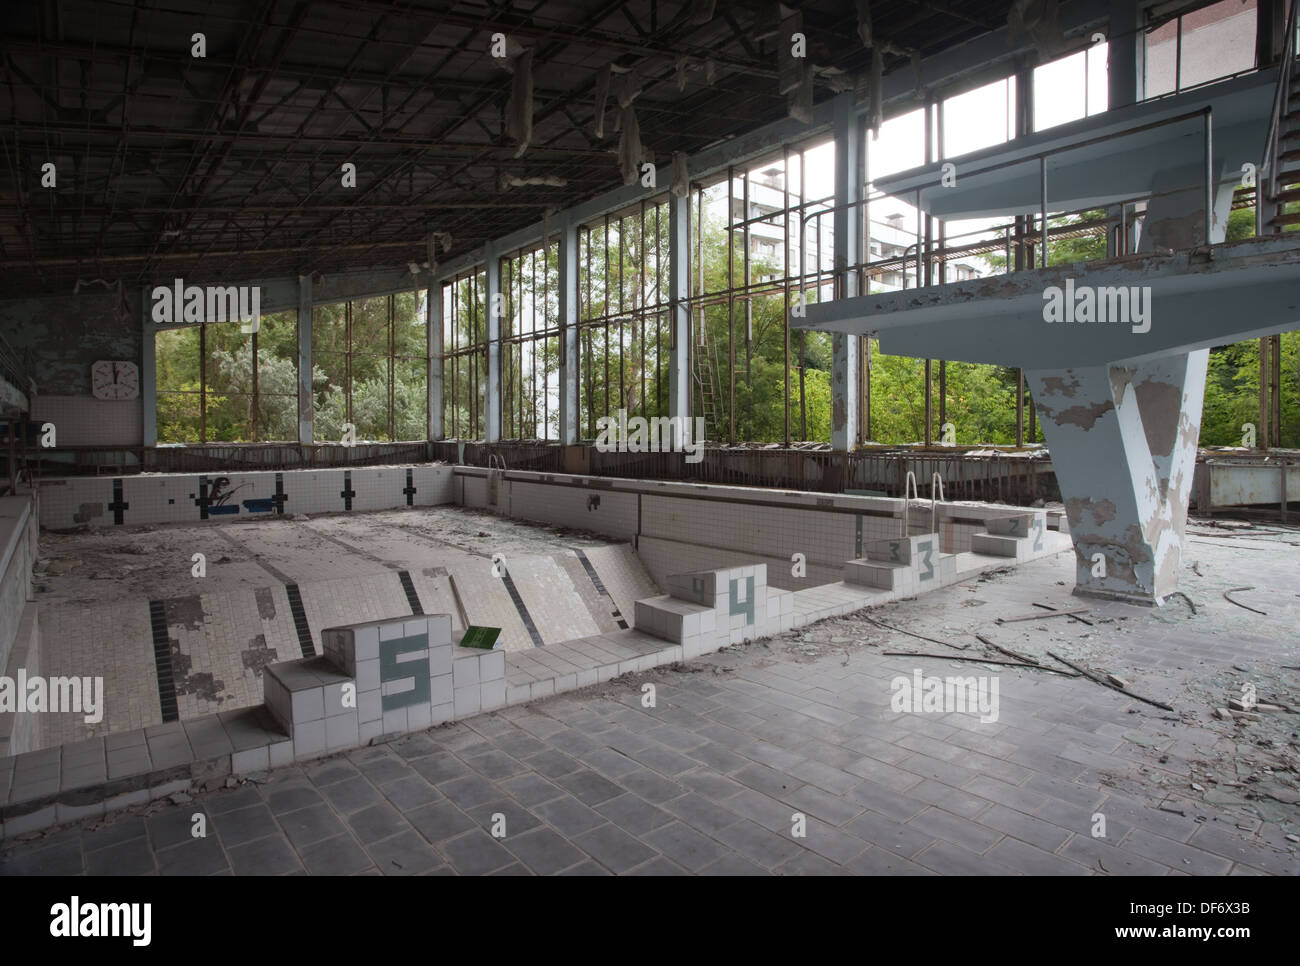 The abandoned swimming pool in the ghost town of pripyat for Disused swimming pools